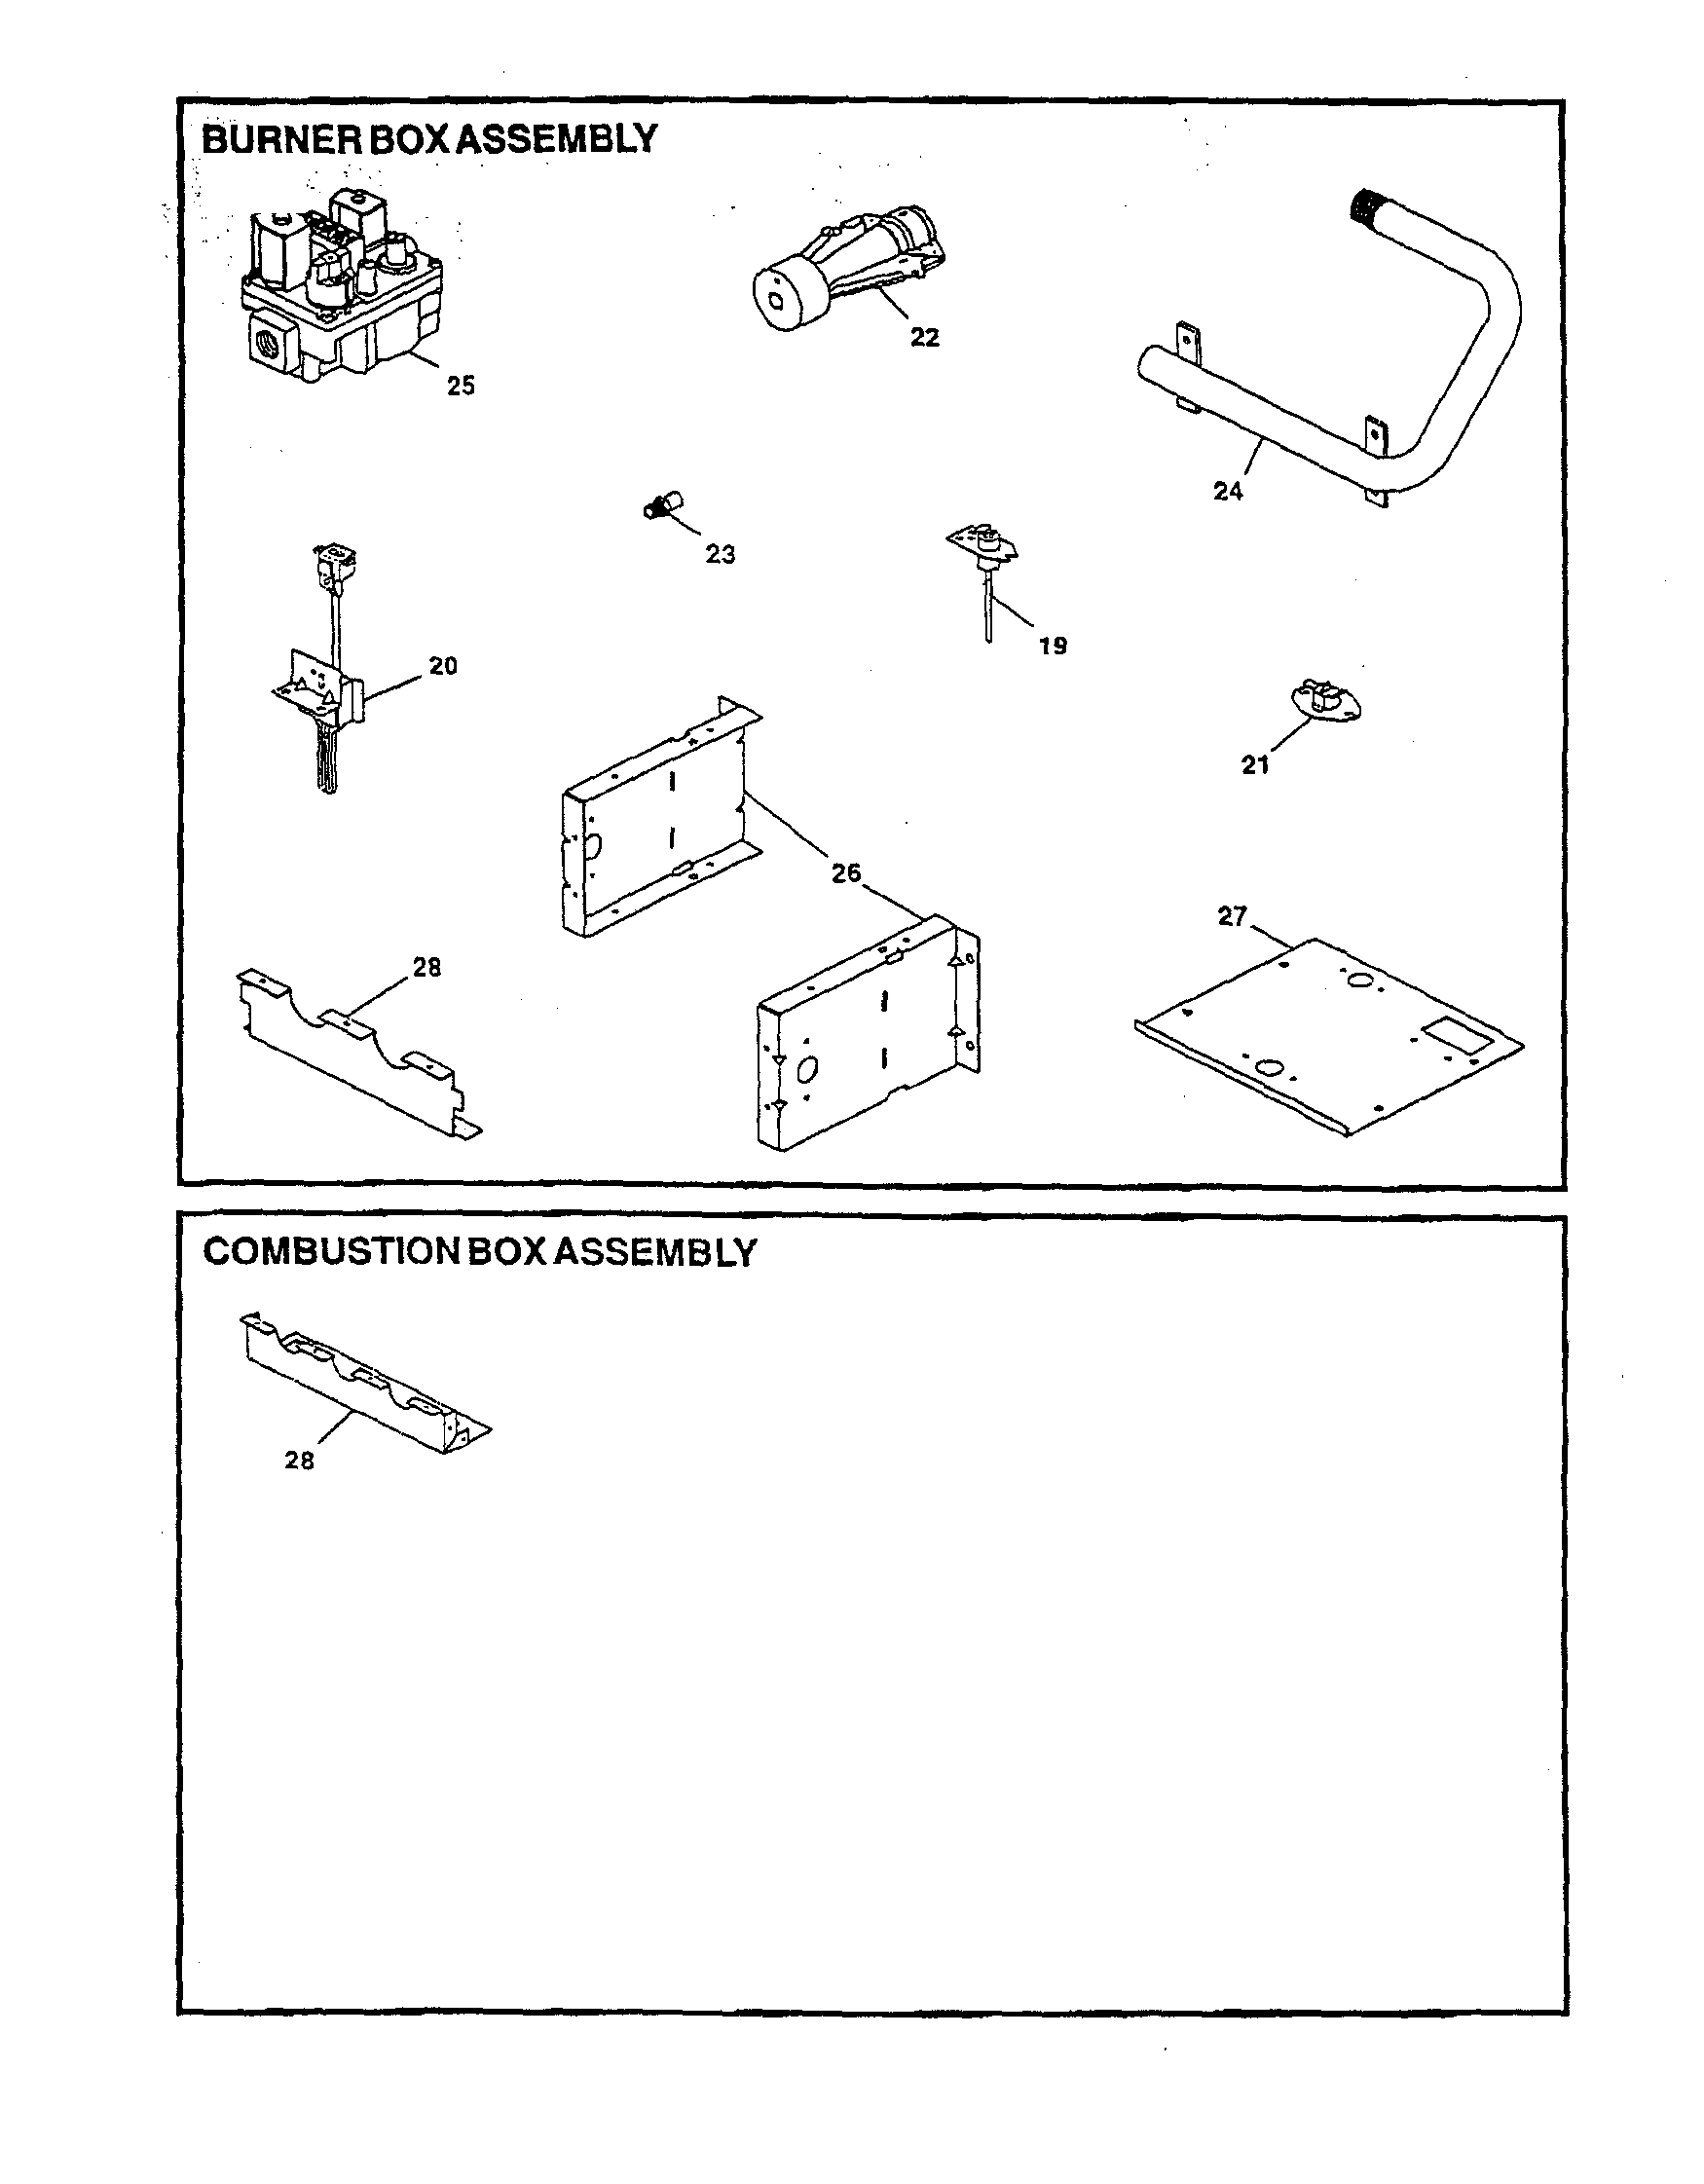 BURNER/COMBUSTION BOX ASSEMBLY Diagram & Parts List for